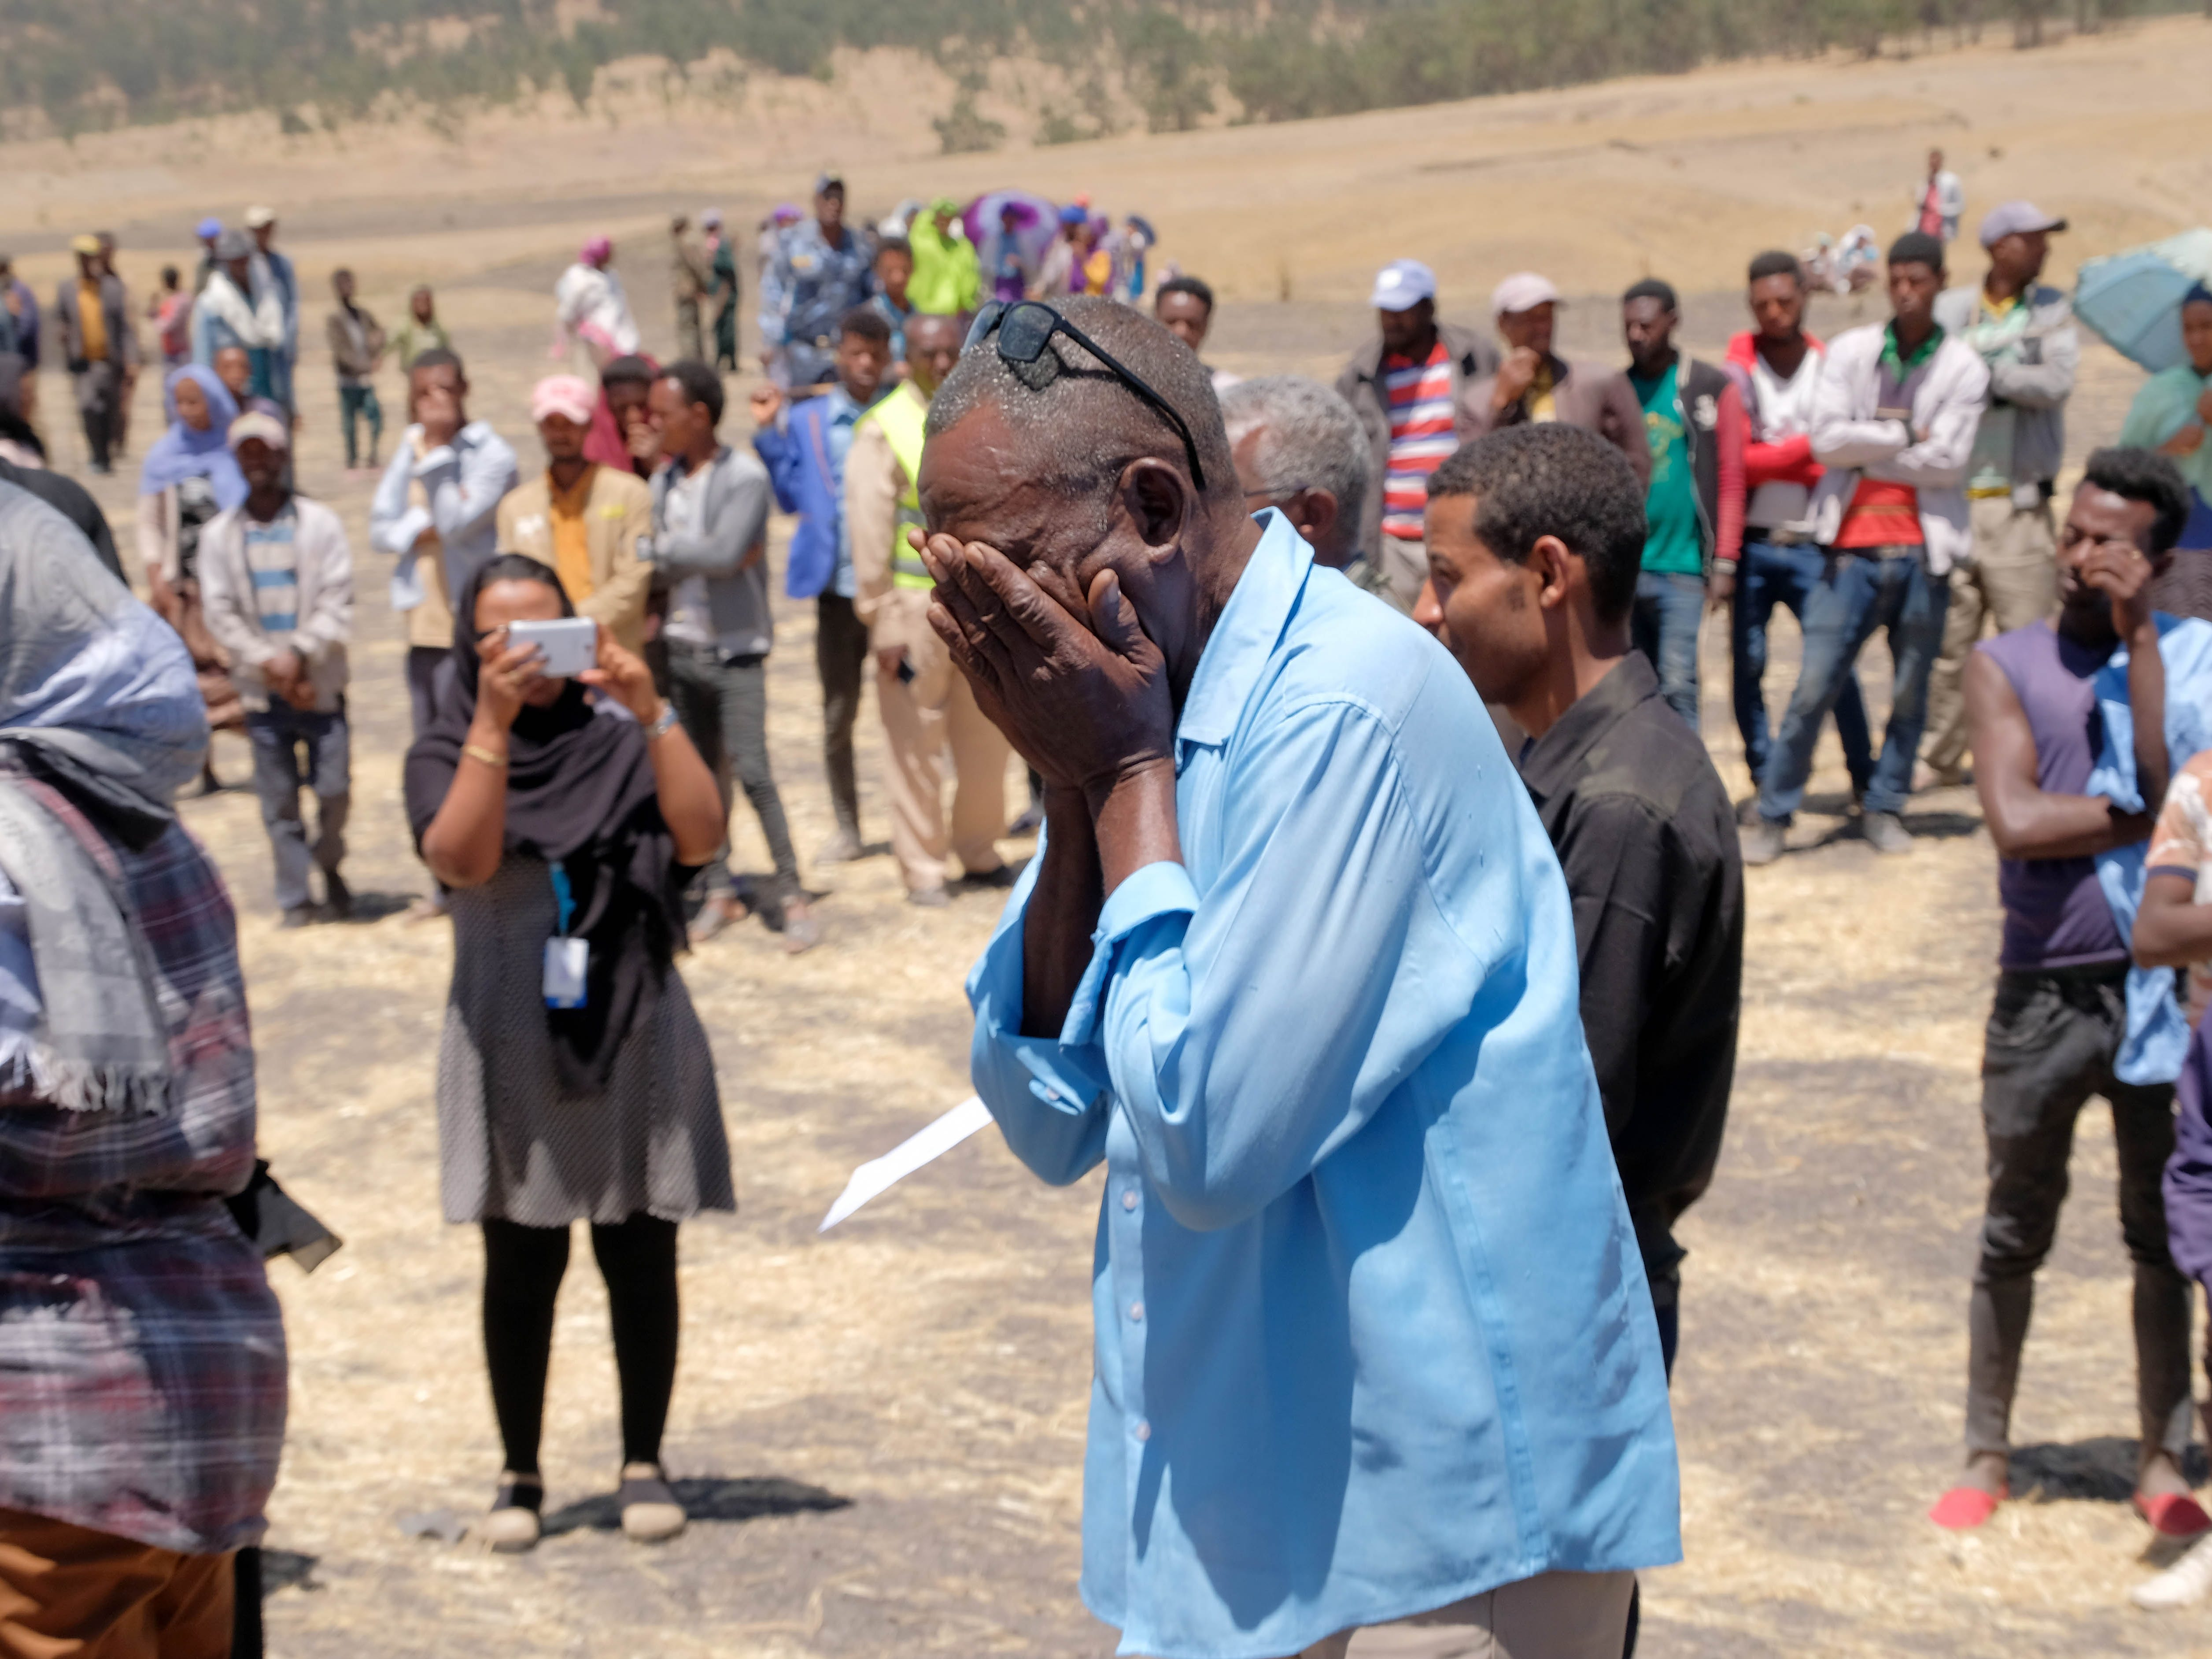 A man weeps for a loved one lost on Ethiopian Airlines Flight 302 during the Asrahhullet or Tulluferra ceremony on March 21, 2019 in Ejere, Ethiopia.